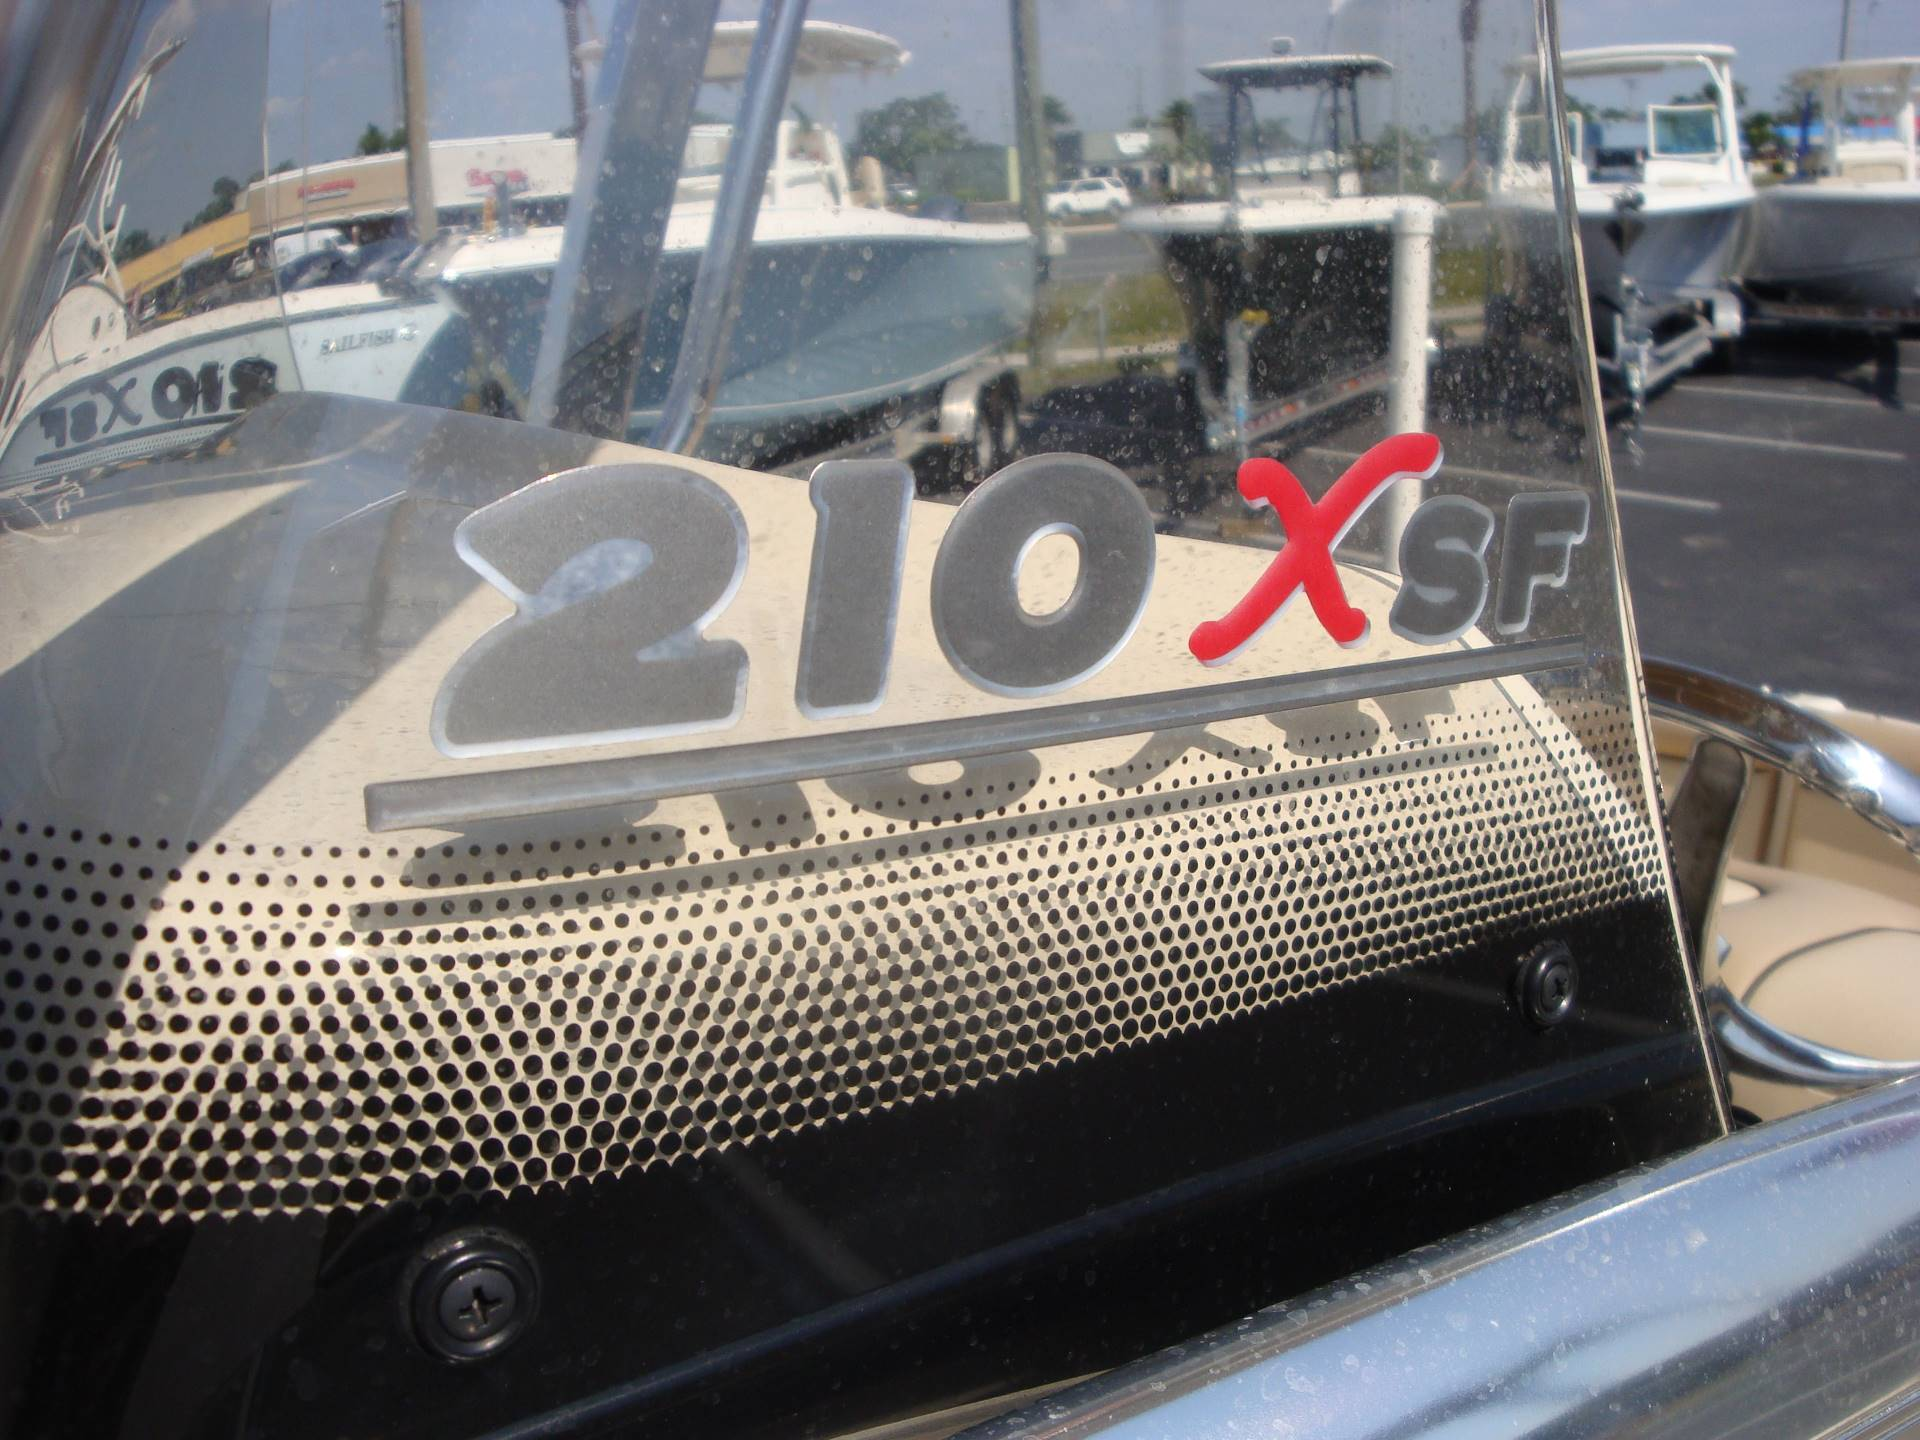 2016 Scout Boats 210 XSF in Holiday, Florida - Photo 58